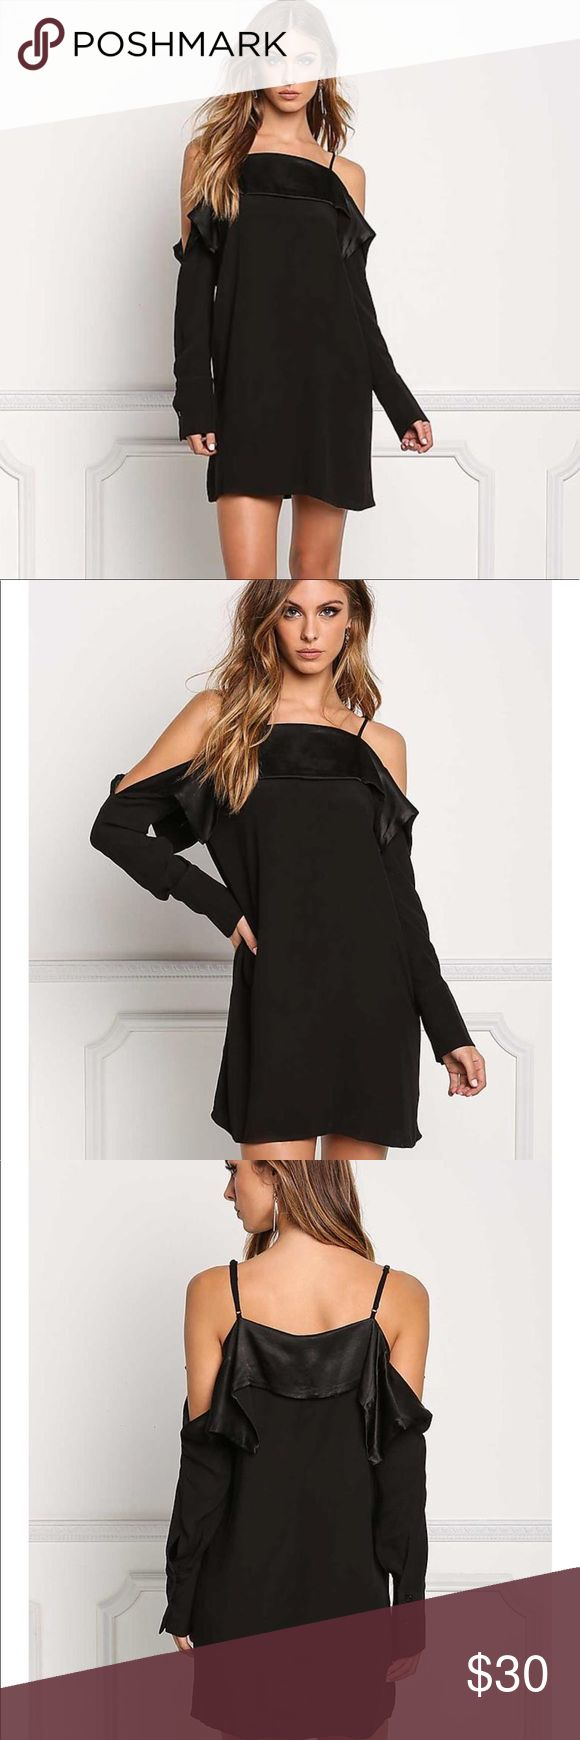 Black cold shoulder layered dress New gorgeous black shift dress , silky interior that peaks out along the short layered top, long sleeve with shoulder cut out spaghetti strap . Super chick  , perfect for a nite out or that special Date ! boutique culture Dresses